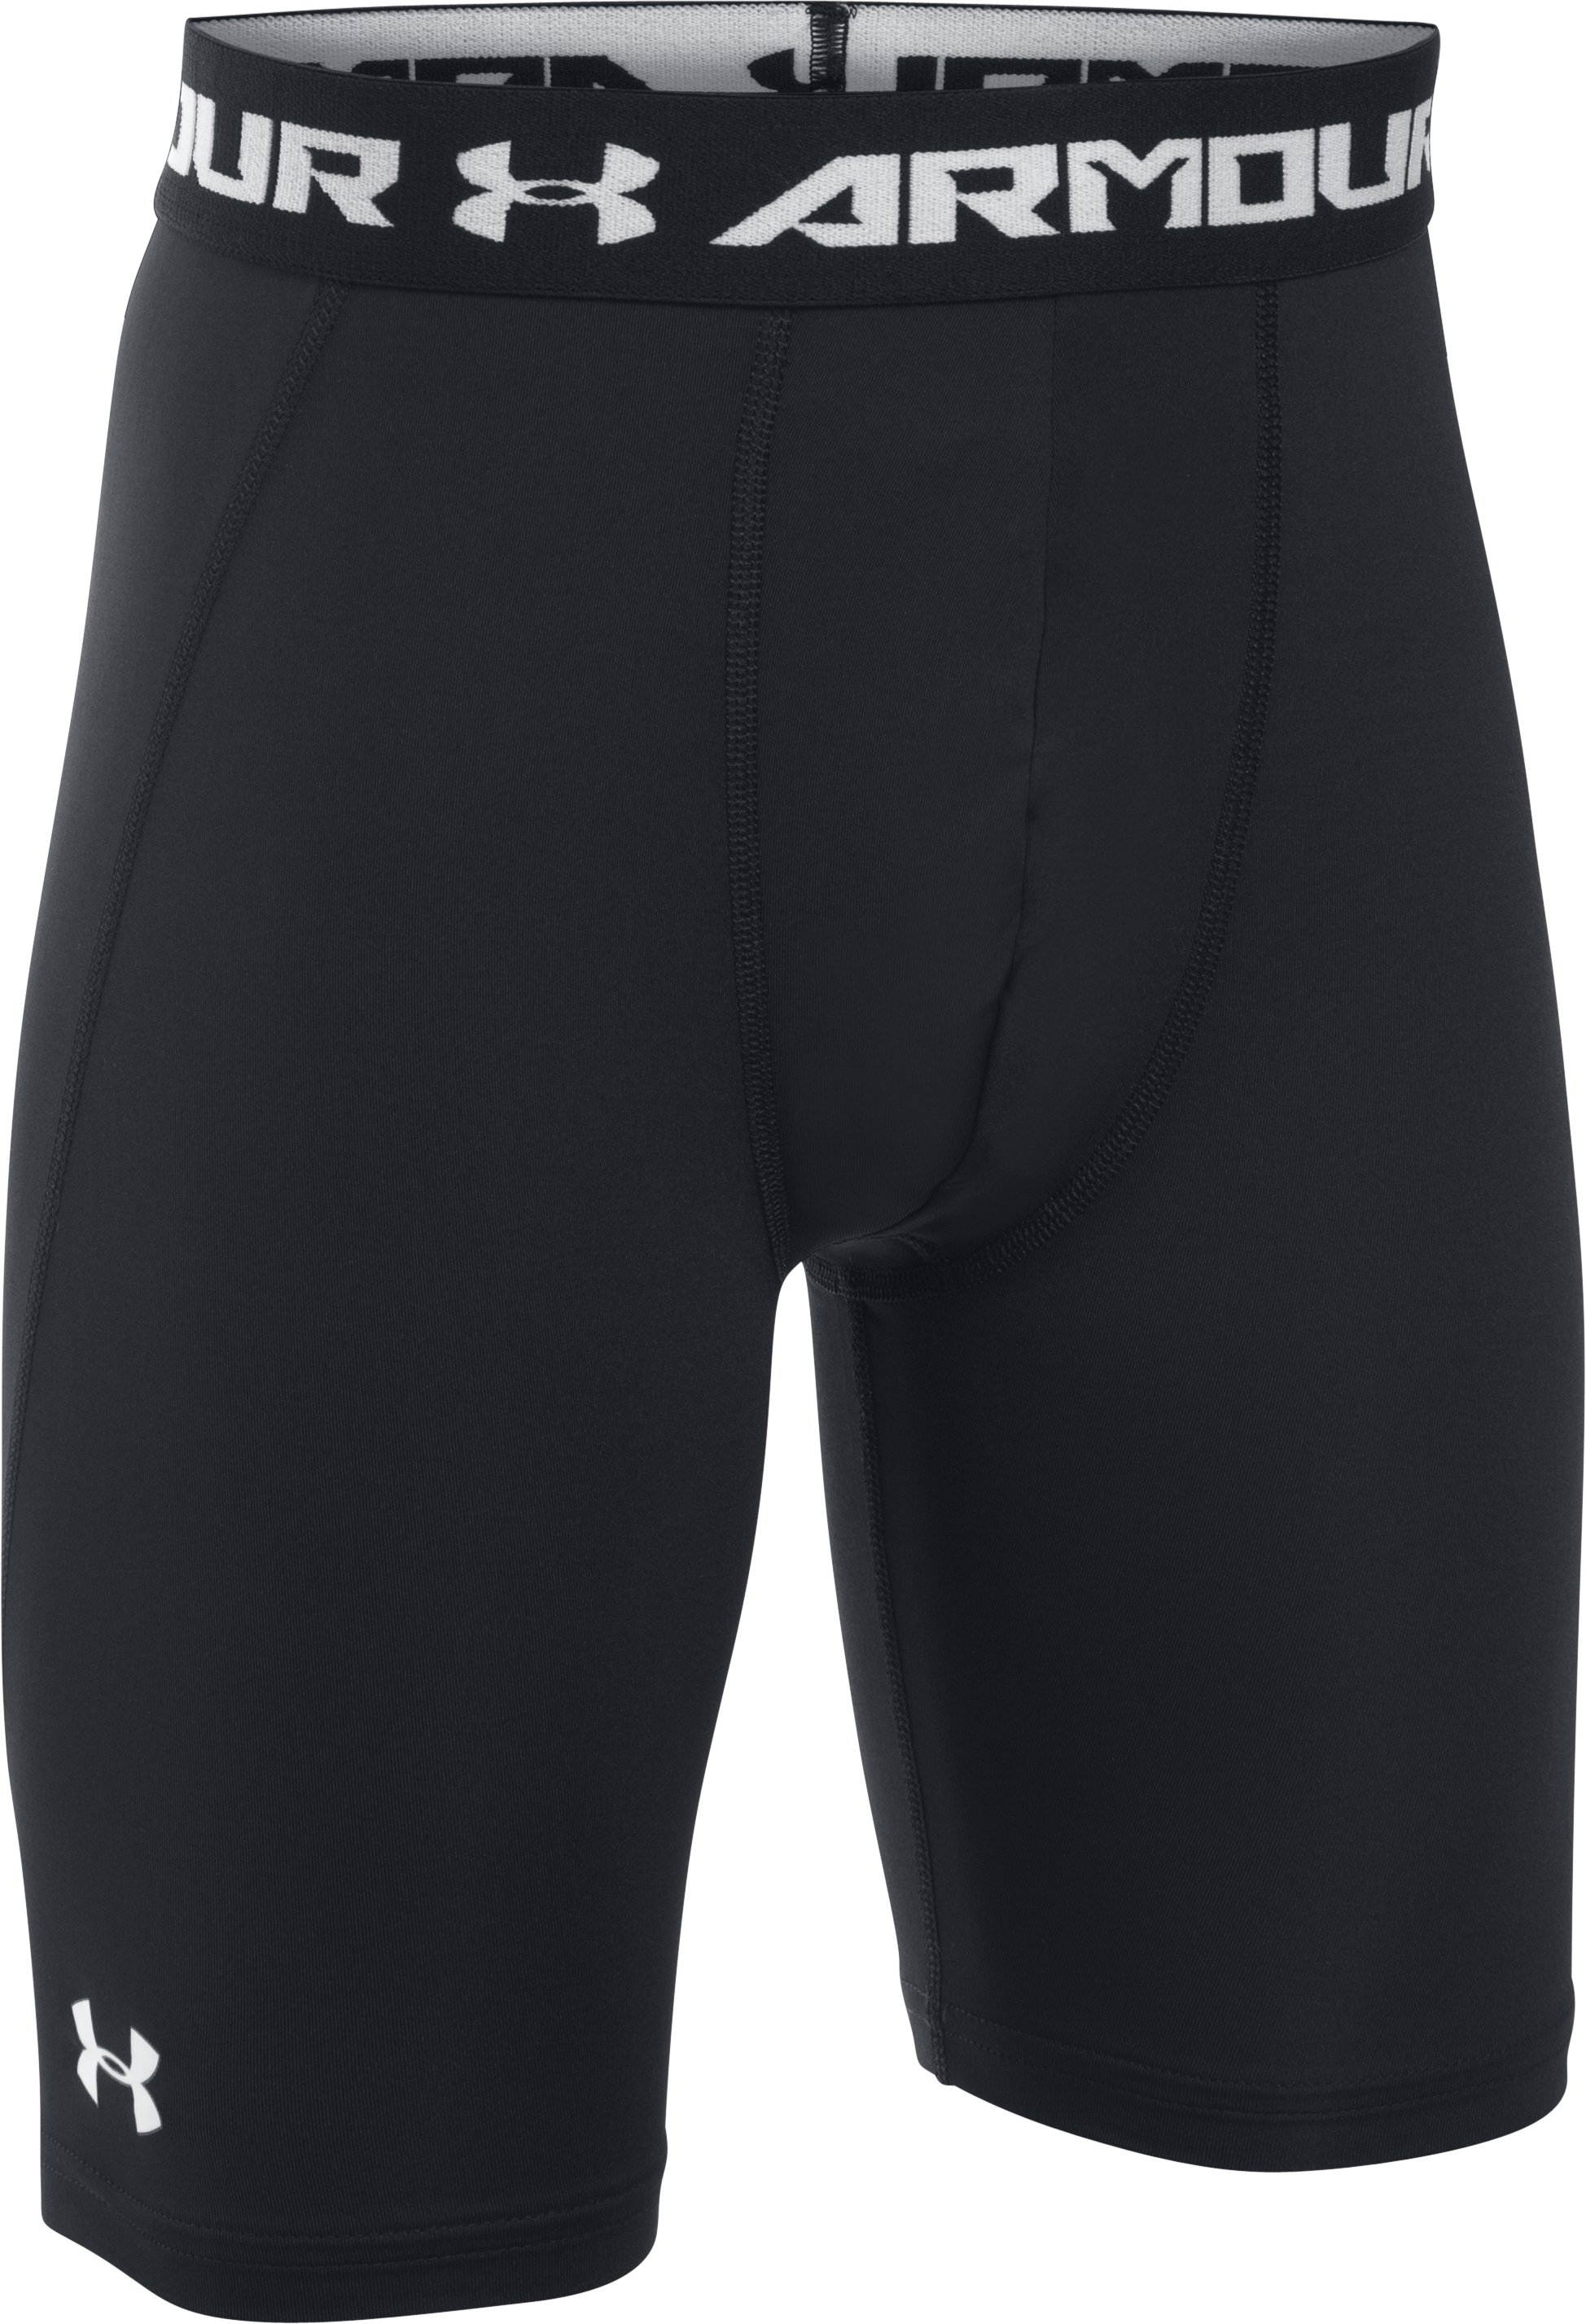 Boys' UA HeatGear® Armour Fitted Shorts — Long, Black